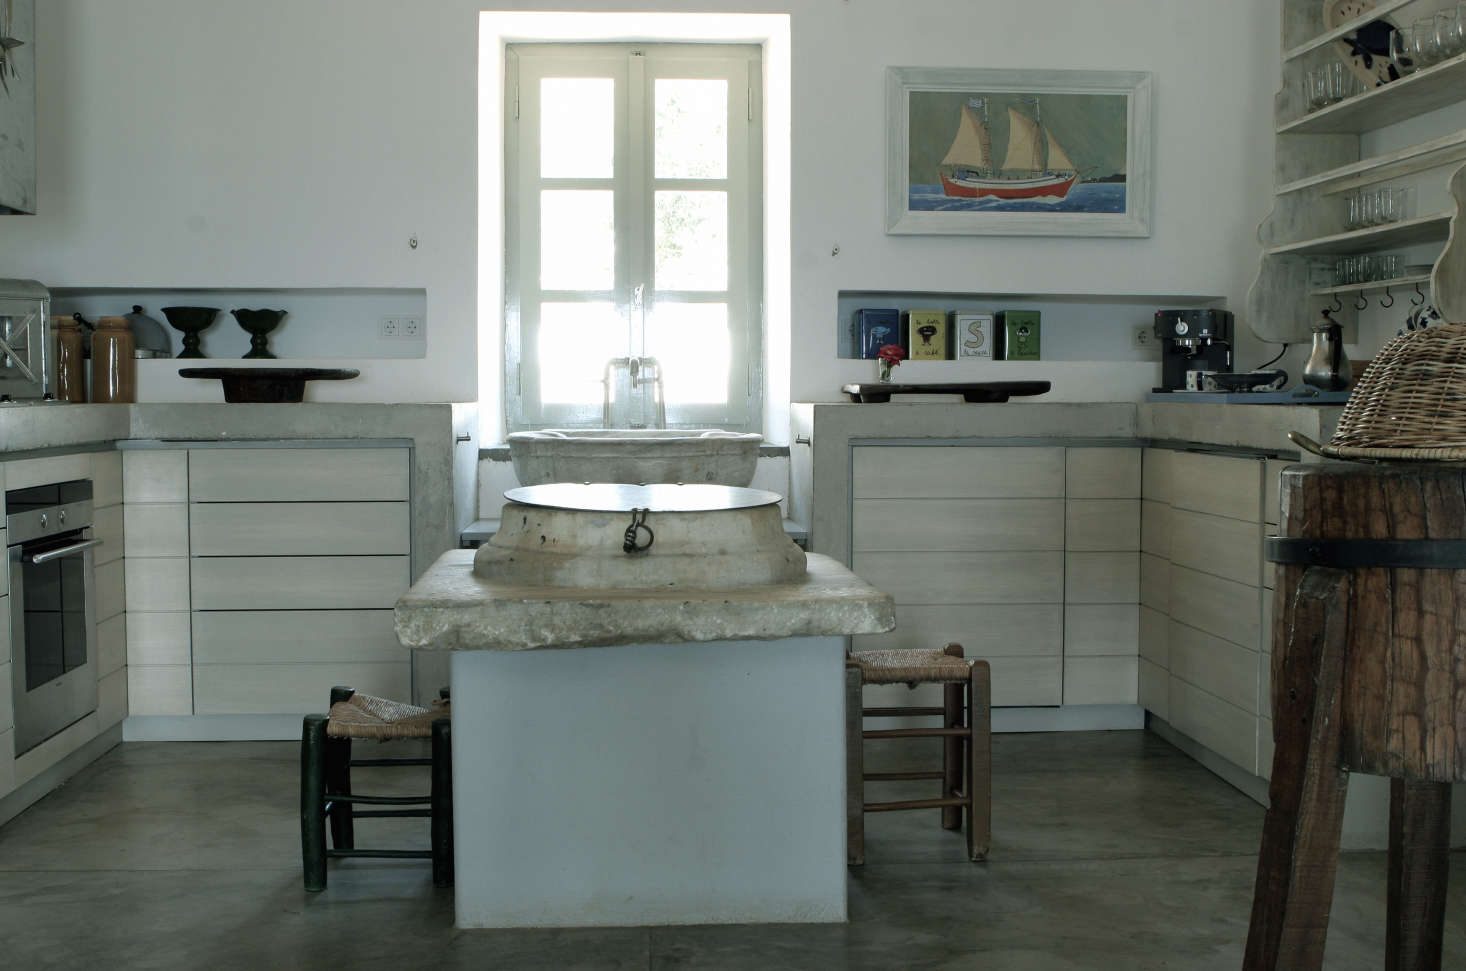 Also from the family collections, a marble piece from an old well serves as the top of the pale blue concrete kitchen island. Photograph byCostas Picadas, courtesy ofZoumboulakis Architects.